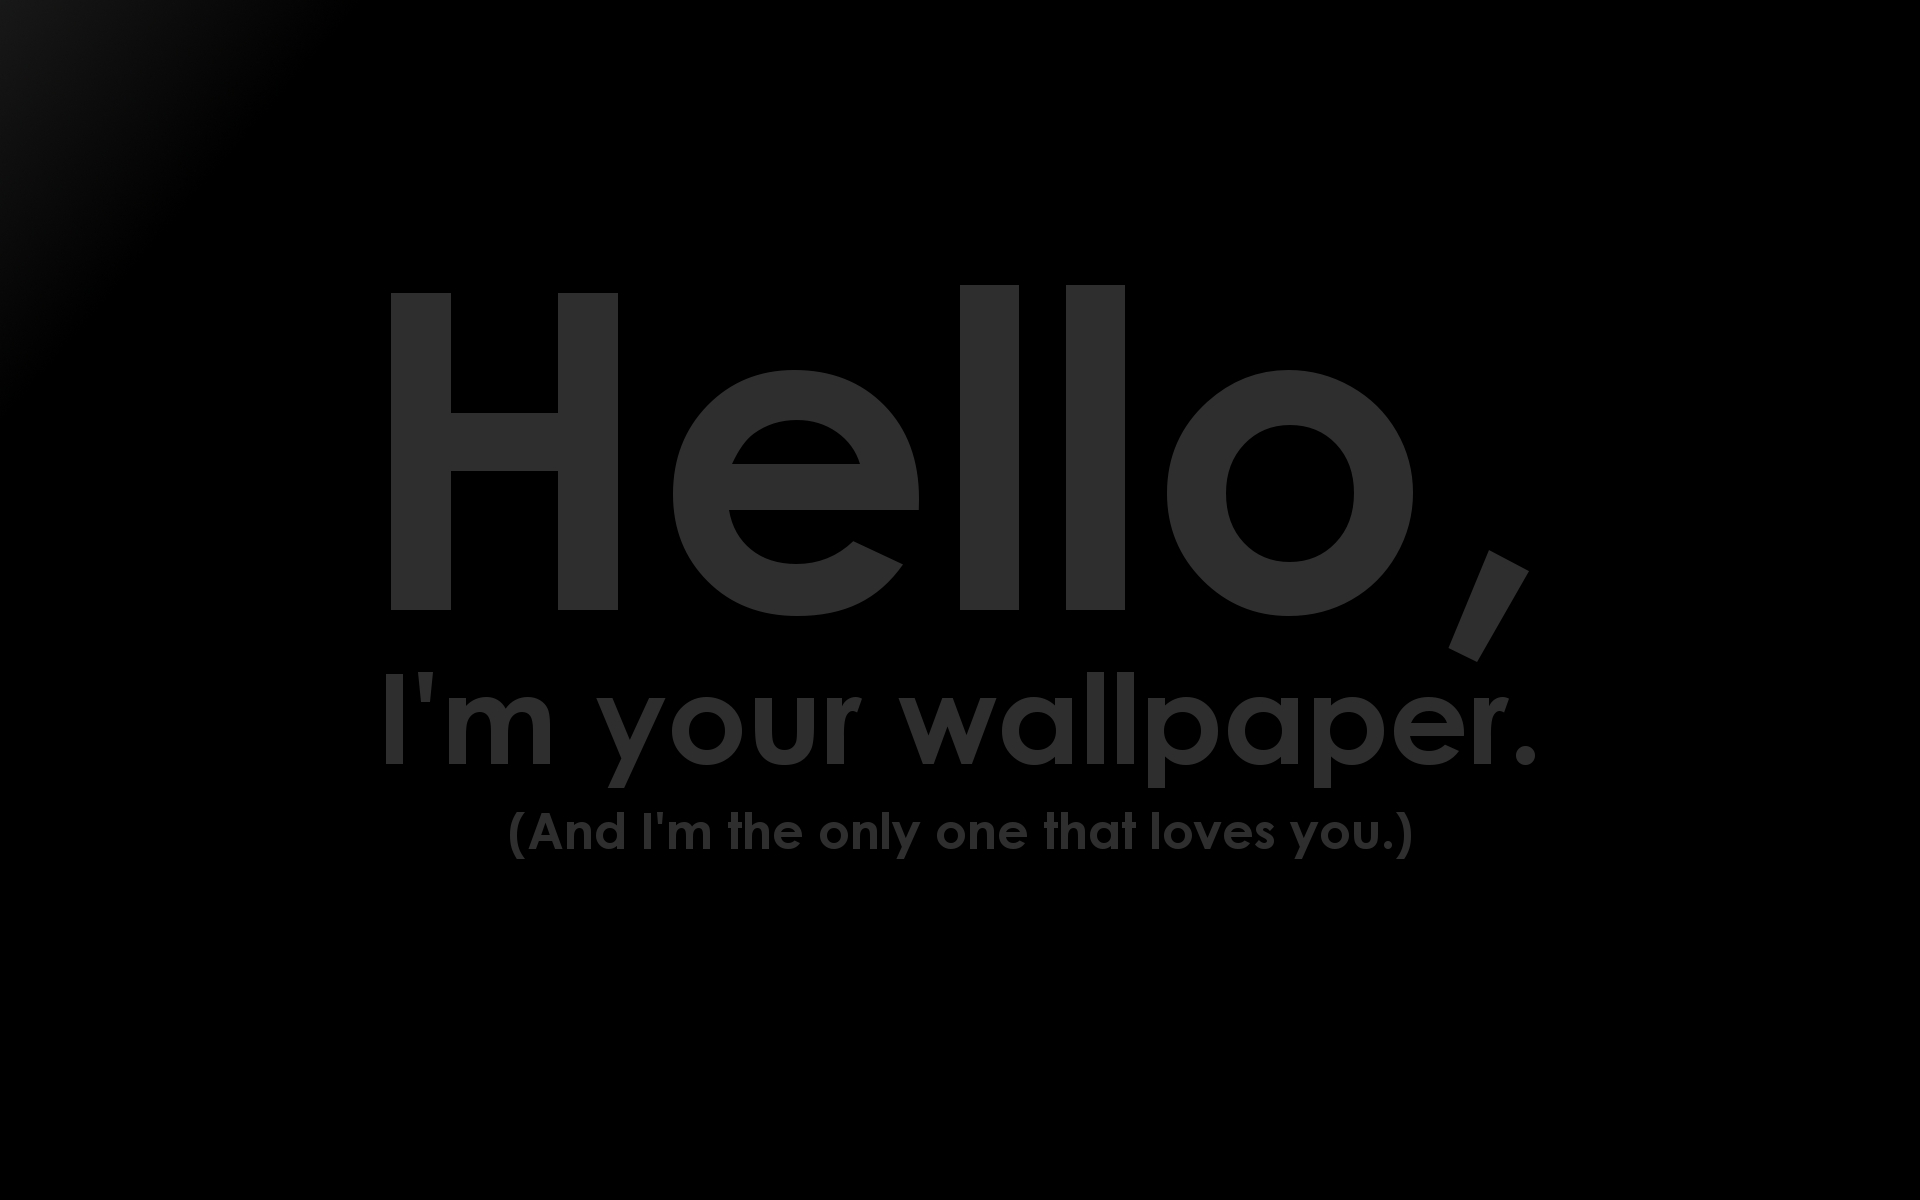 Hello I am your wallpaper by sd lynx 1920x1200